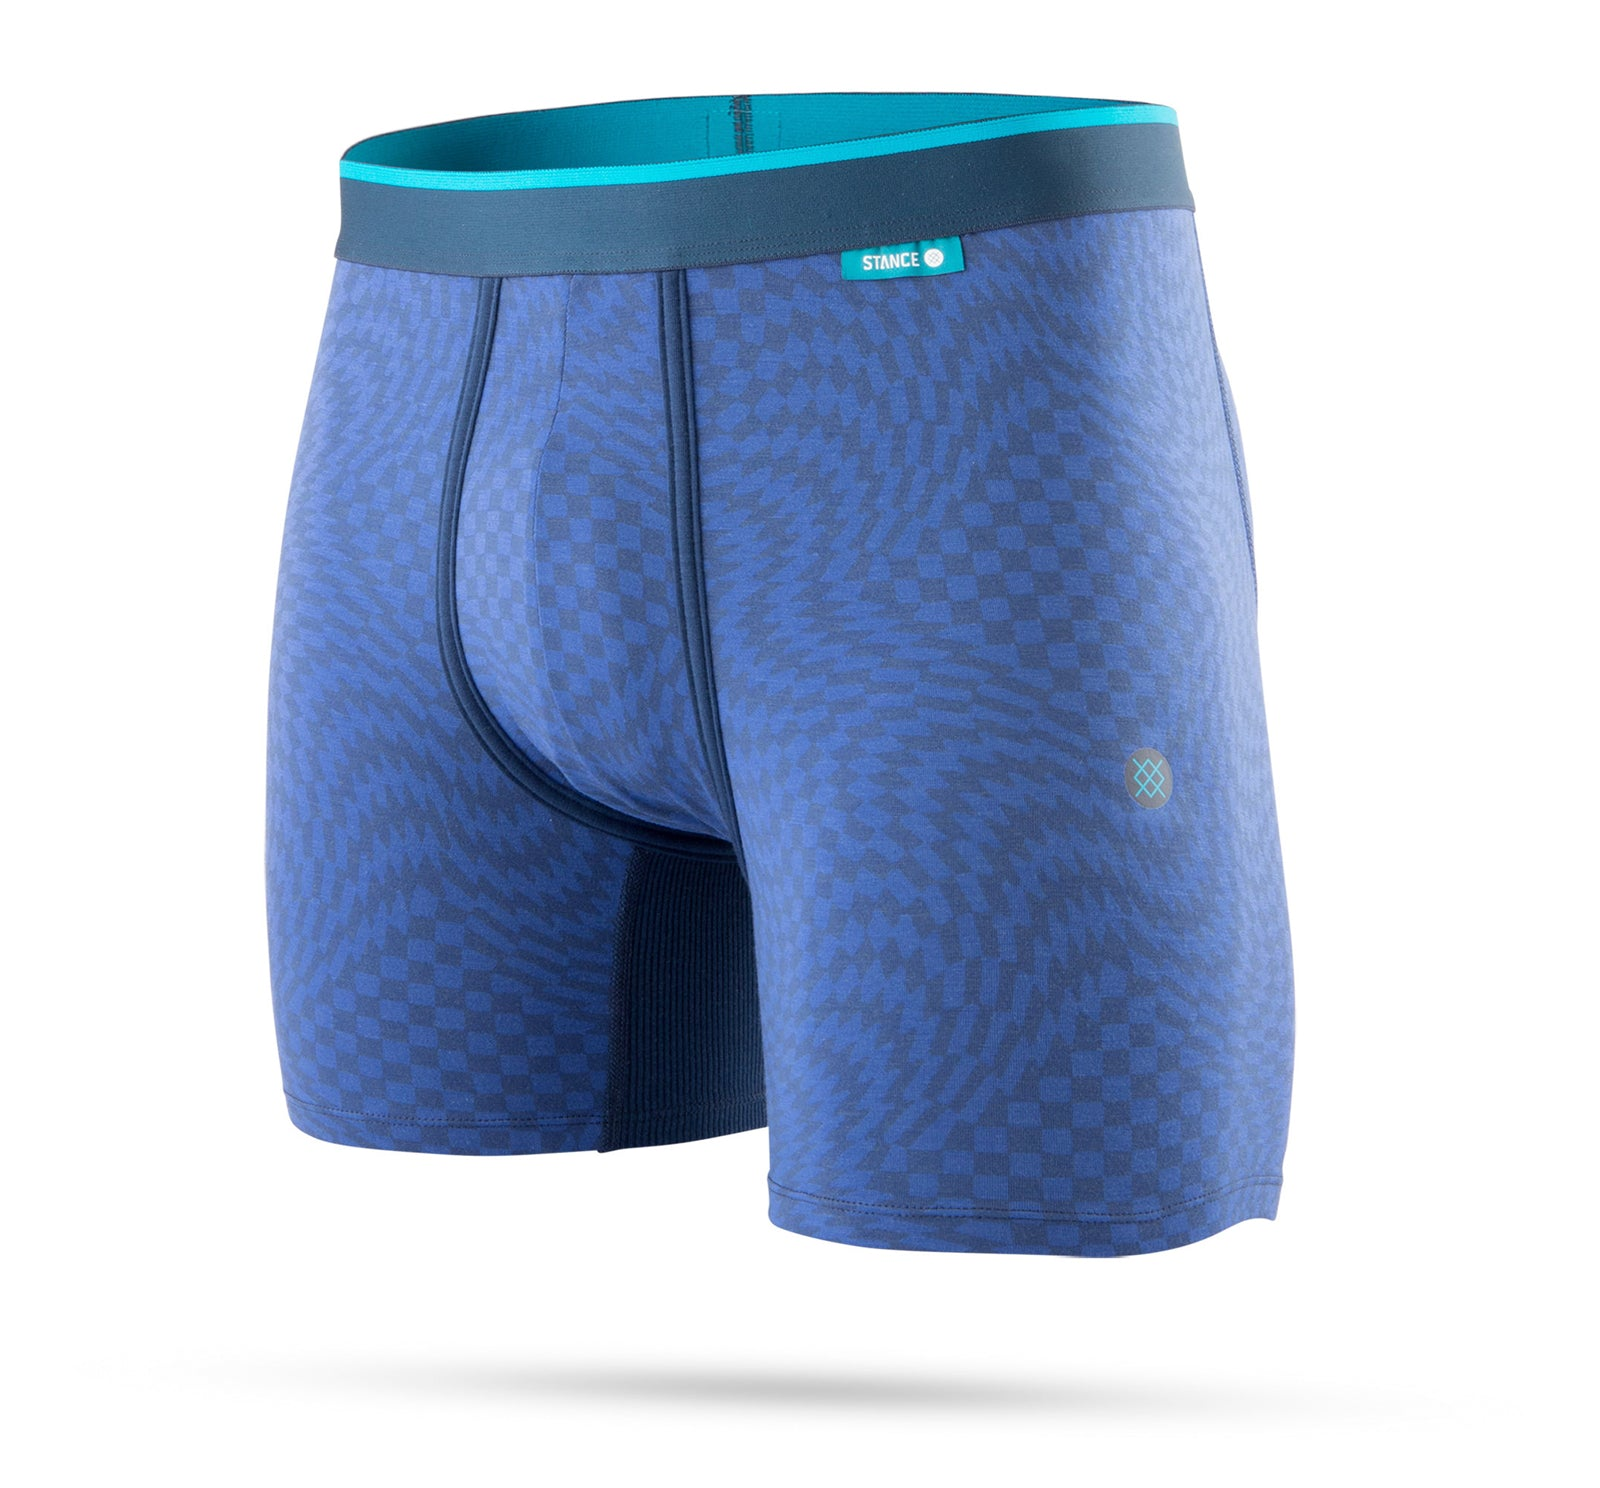 Stance Warped Check Men's Butter Blend Underwear